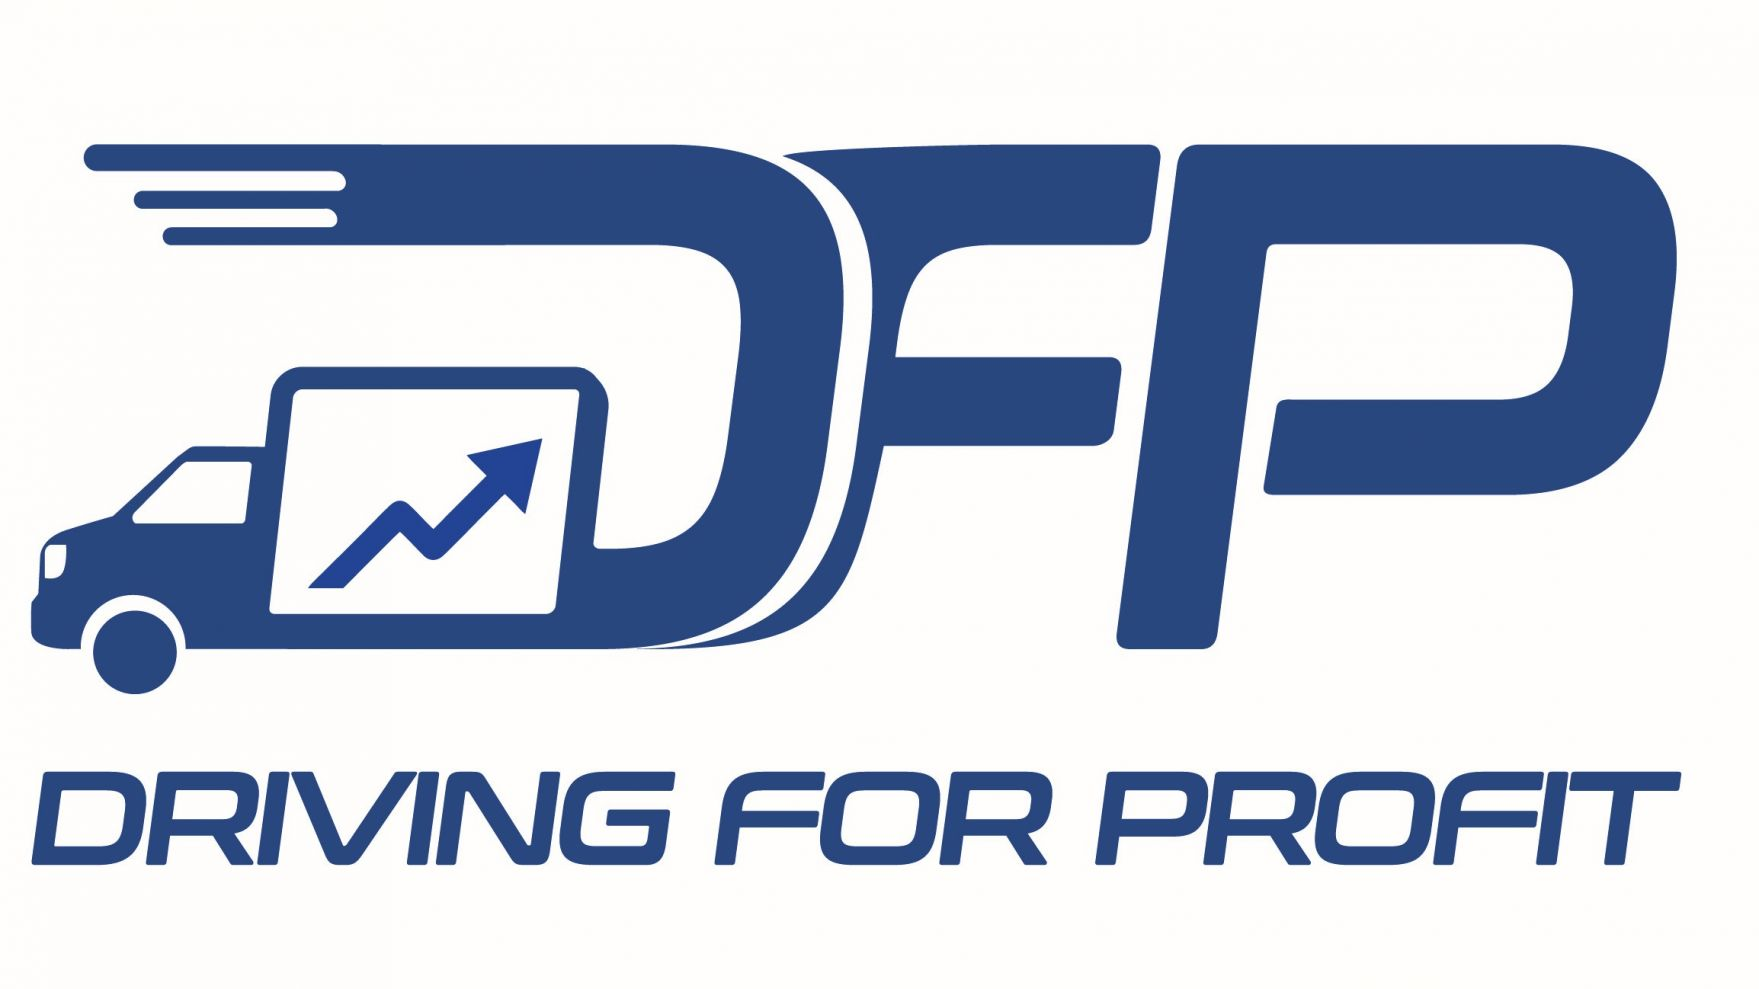 Driving For Profit Logo